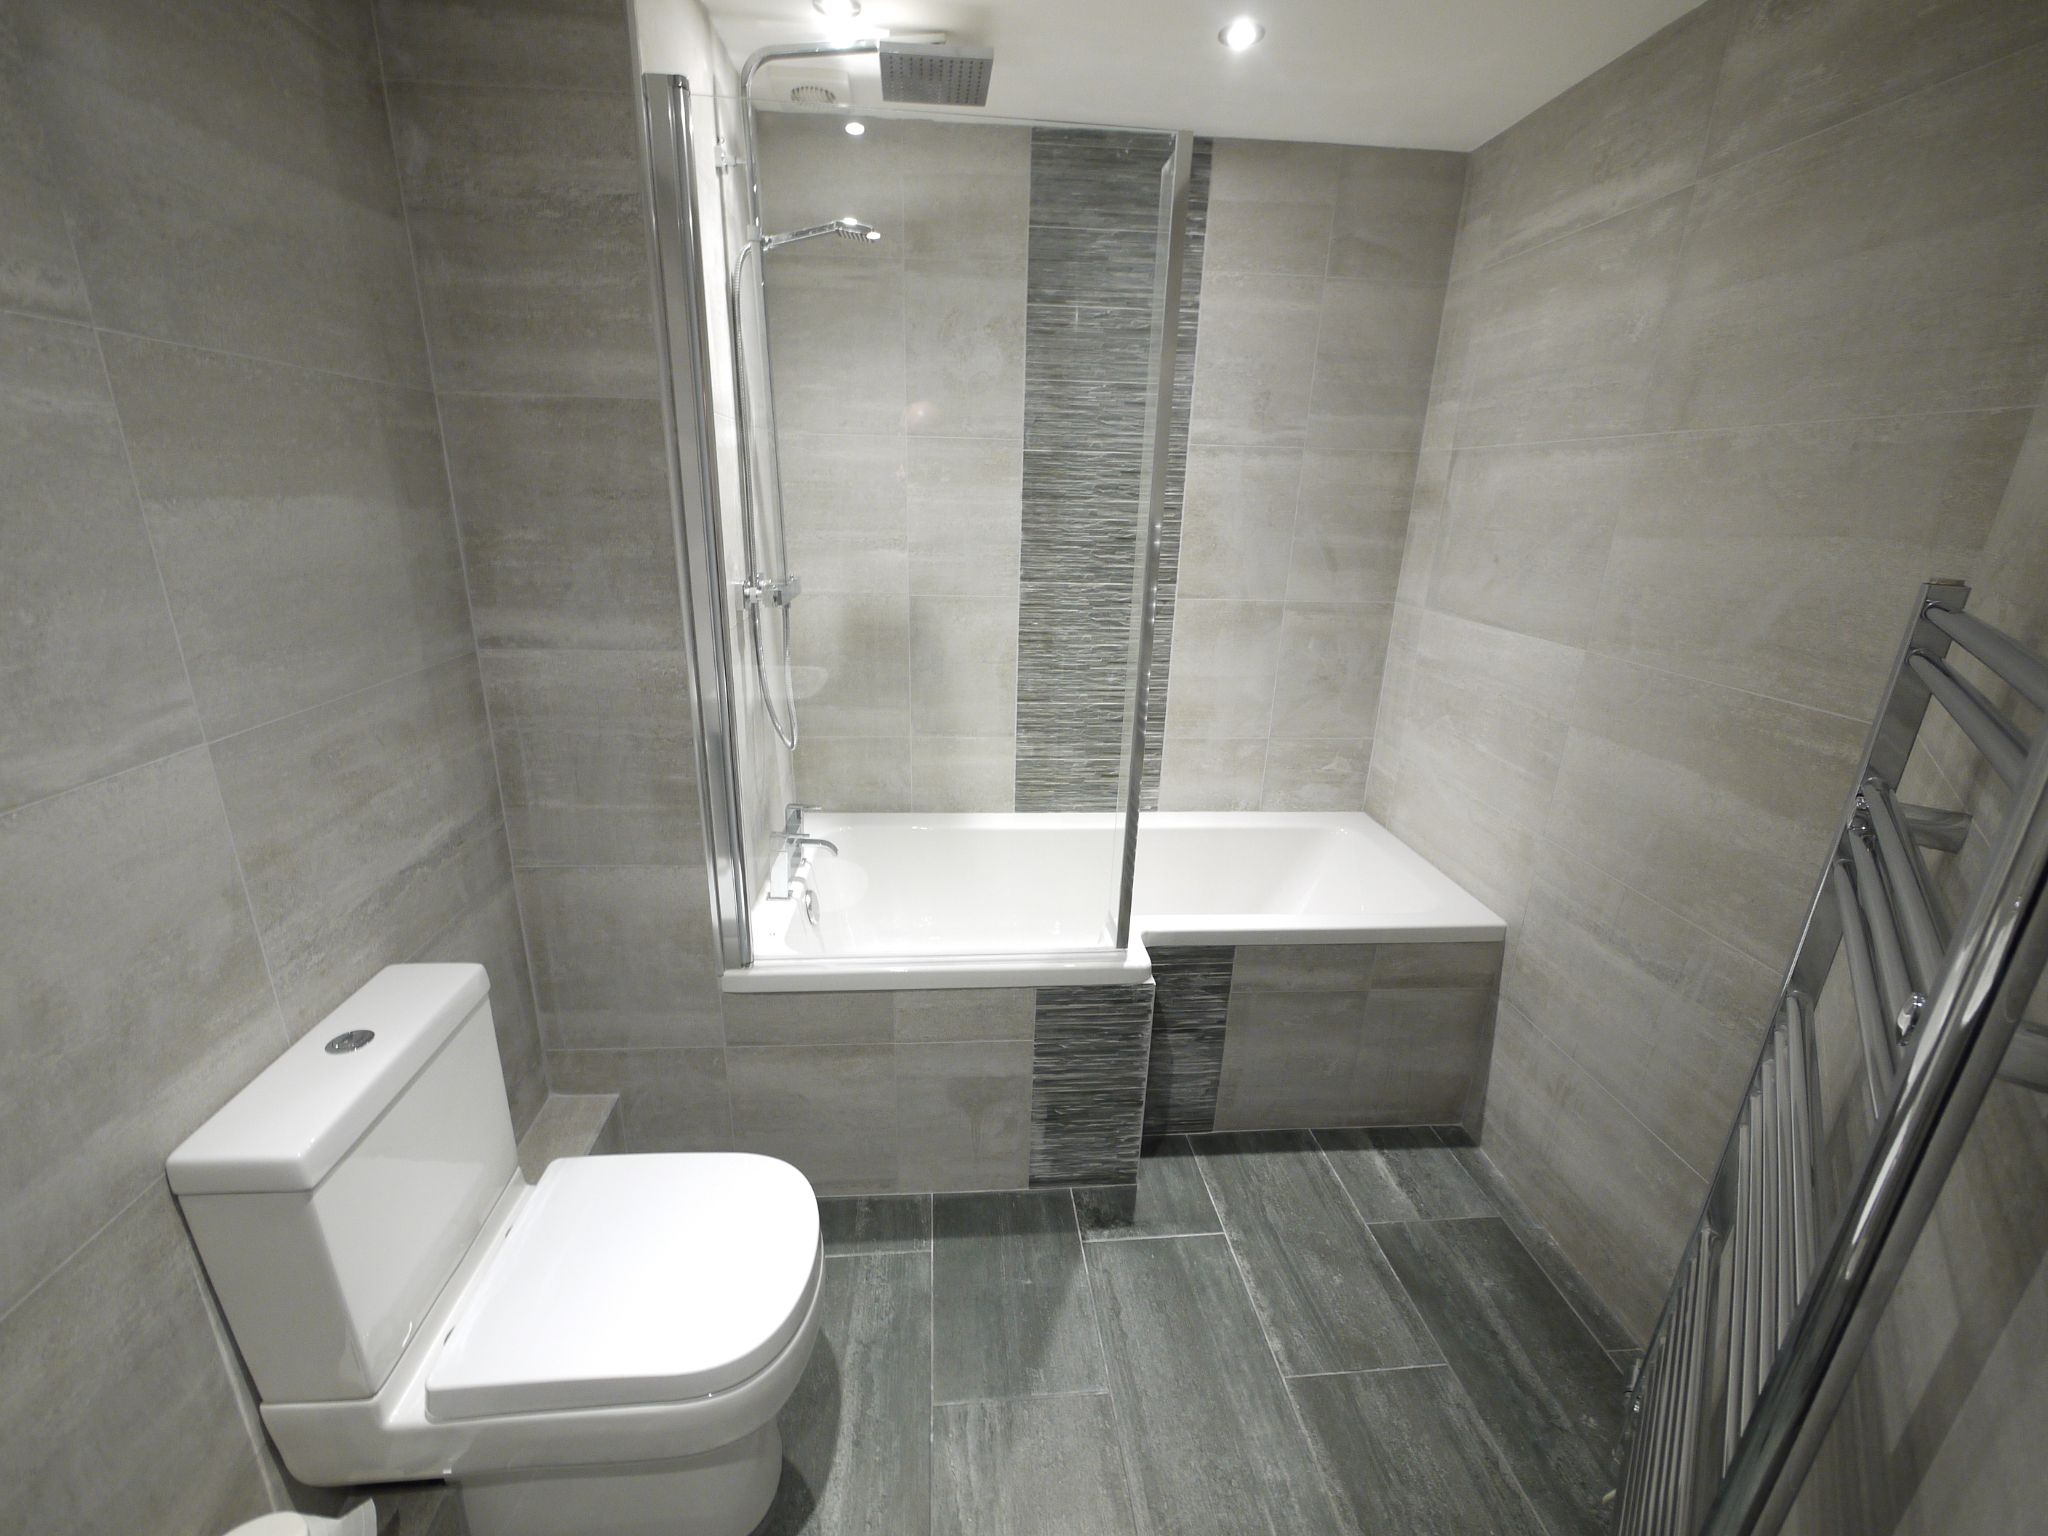 3 bedroom detached house For Sale in Brighouse - Bathroom 2.